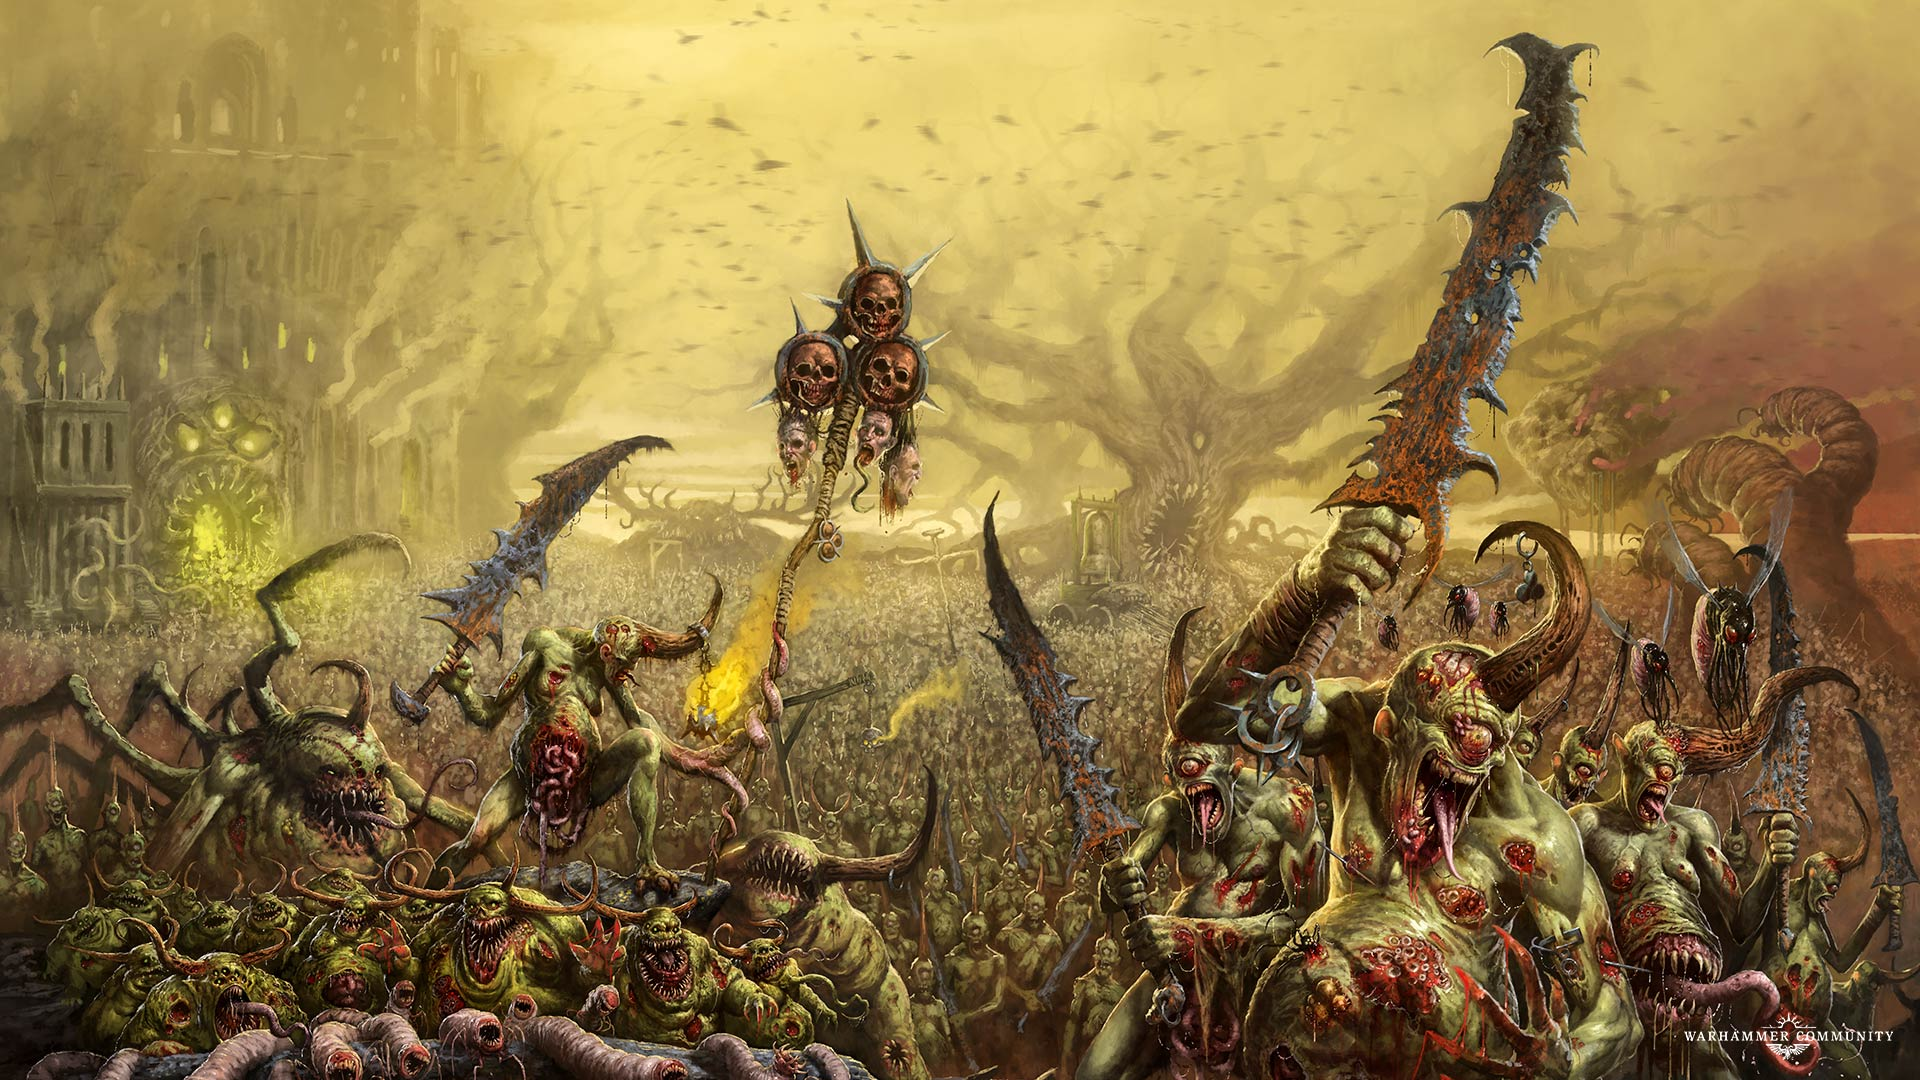 Two New Nurgle Heralds Lead The Charge Bell Of Lost Souls